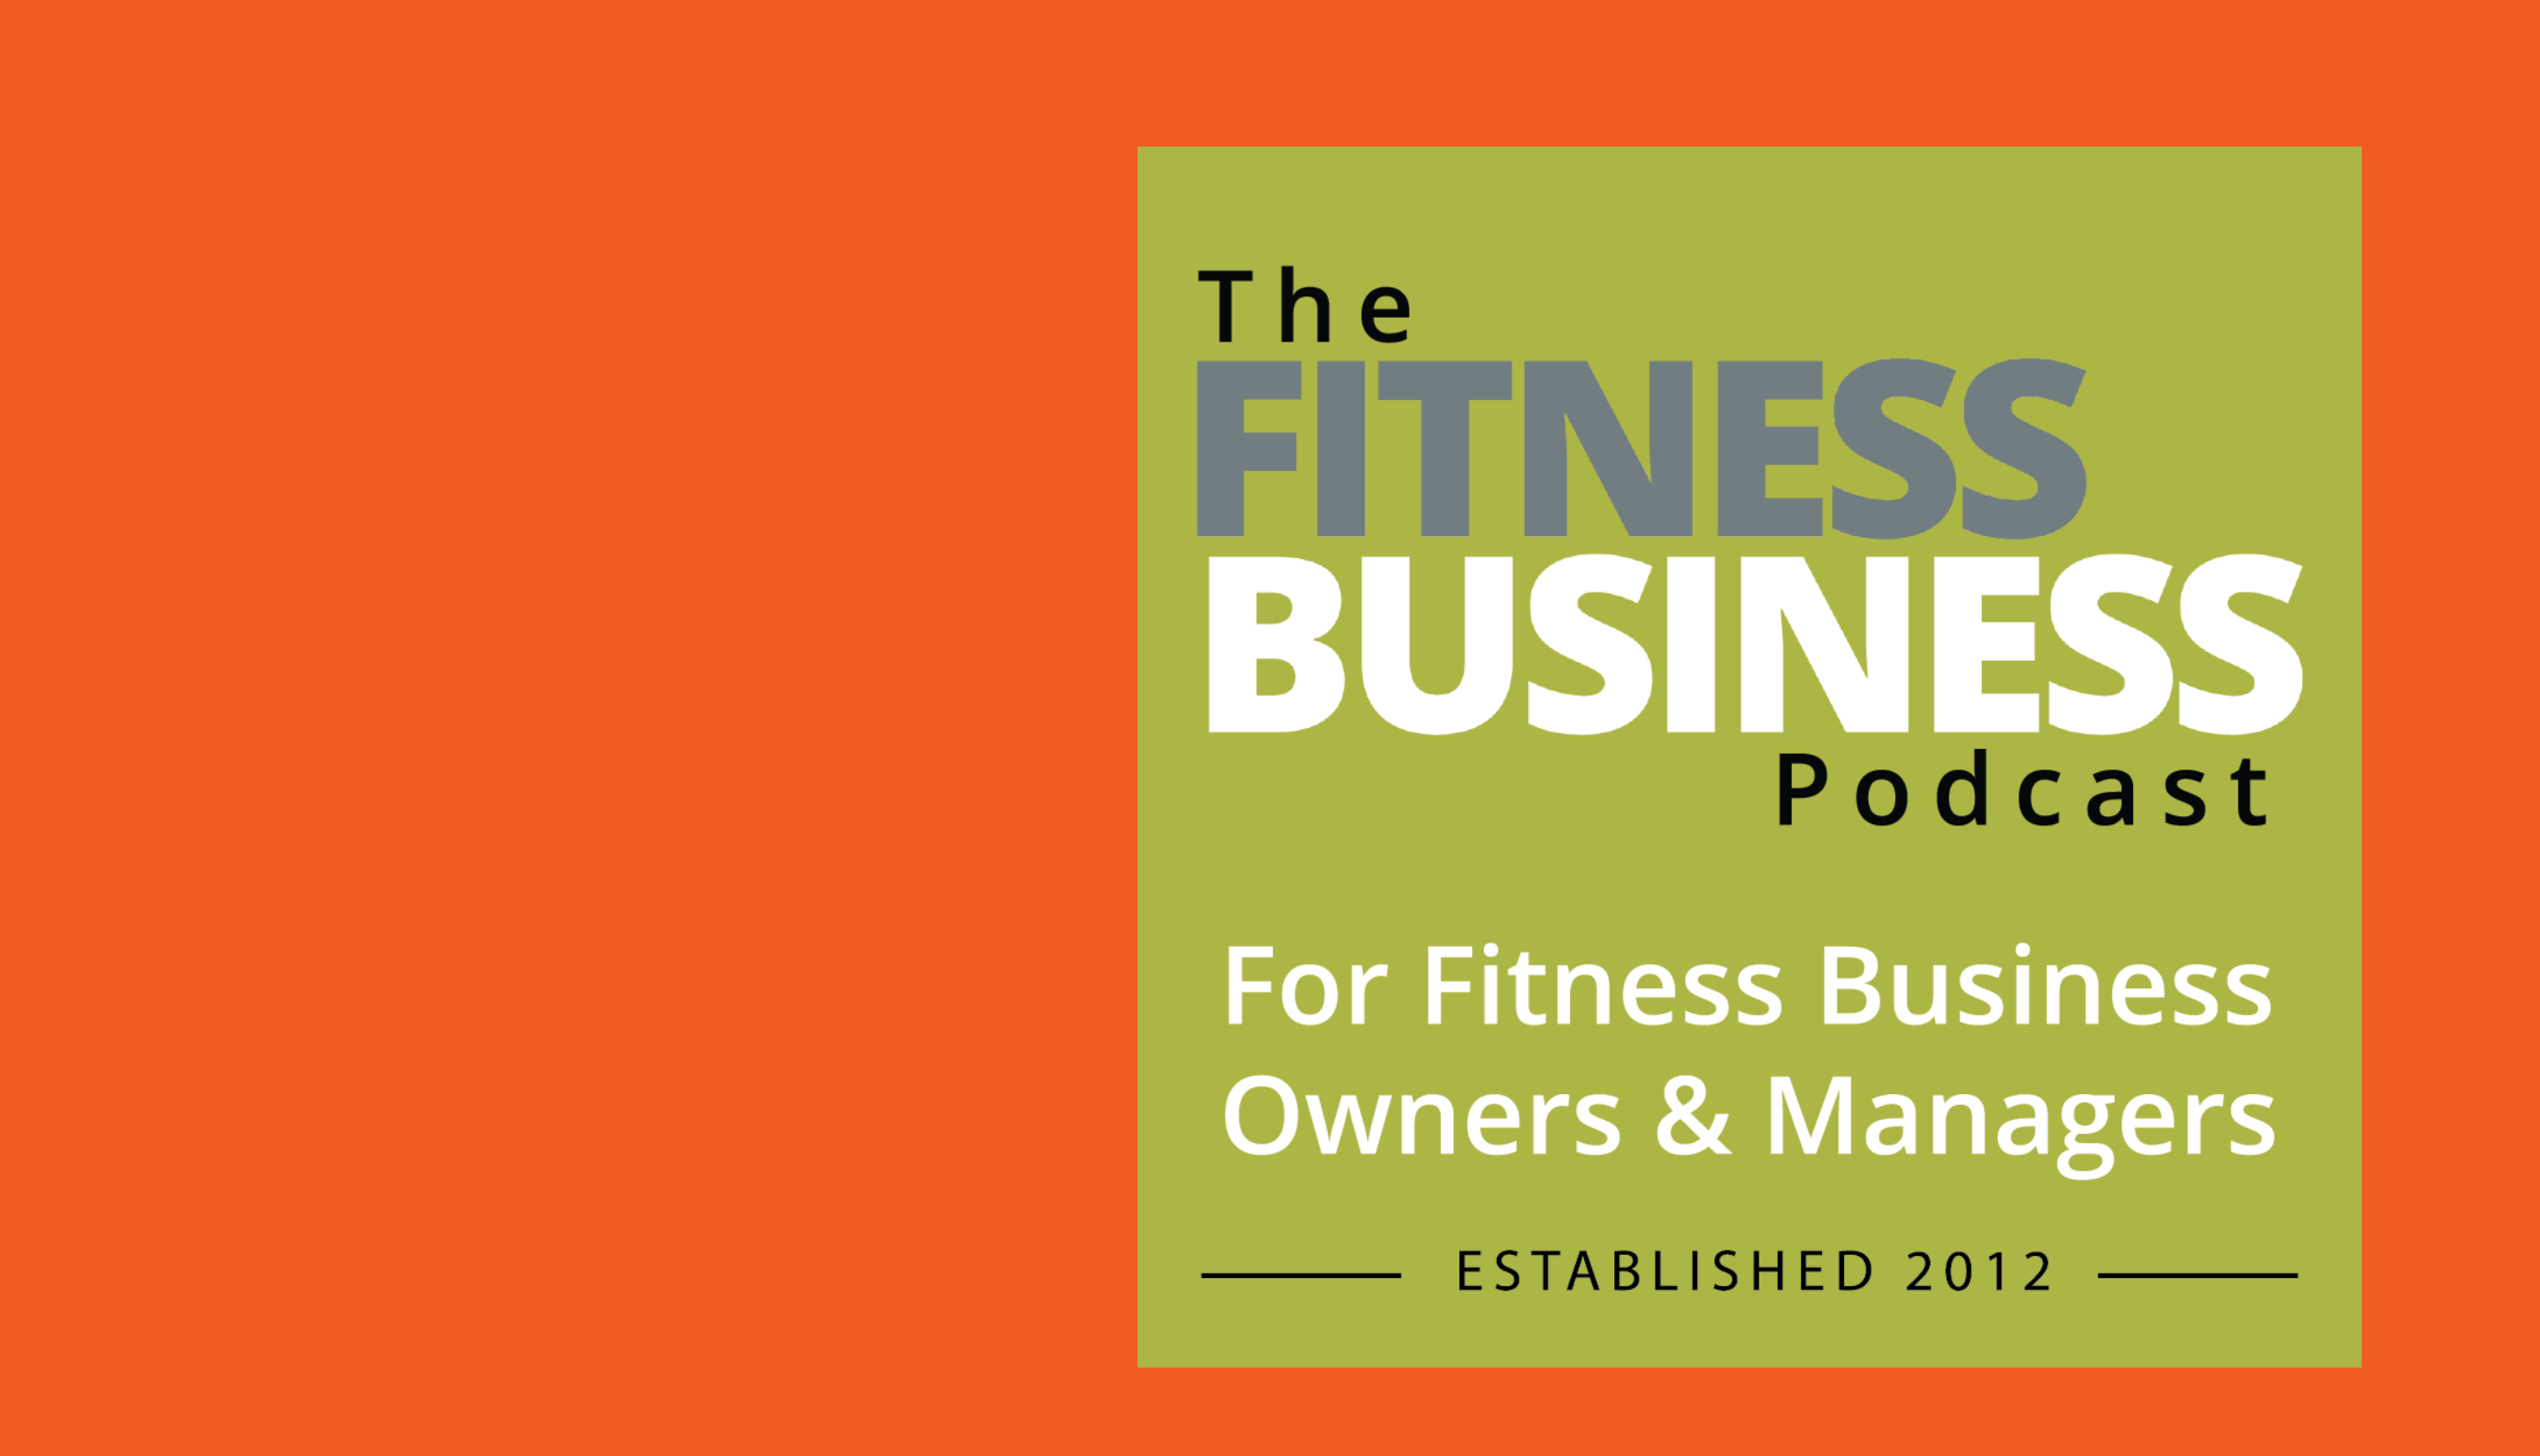 'The Fitness Business Podcast' hits 700,000 downloads Image